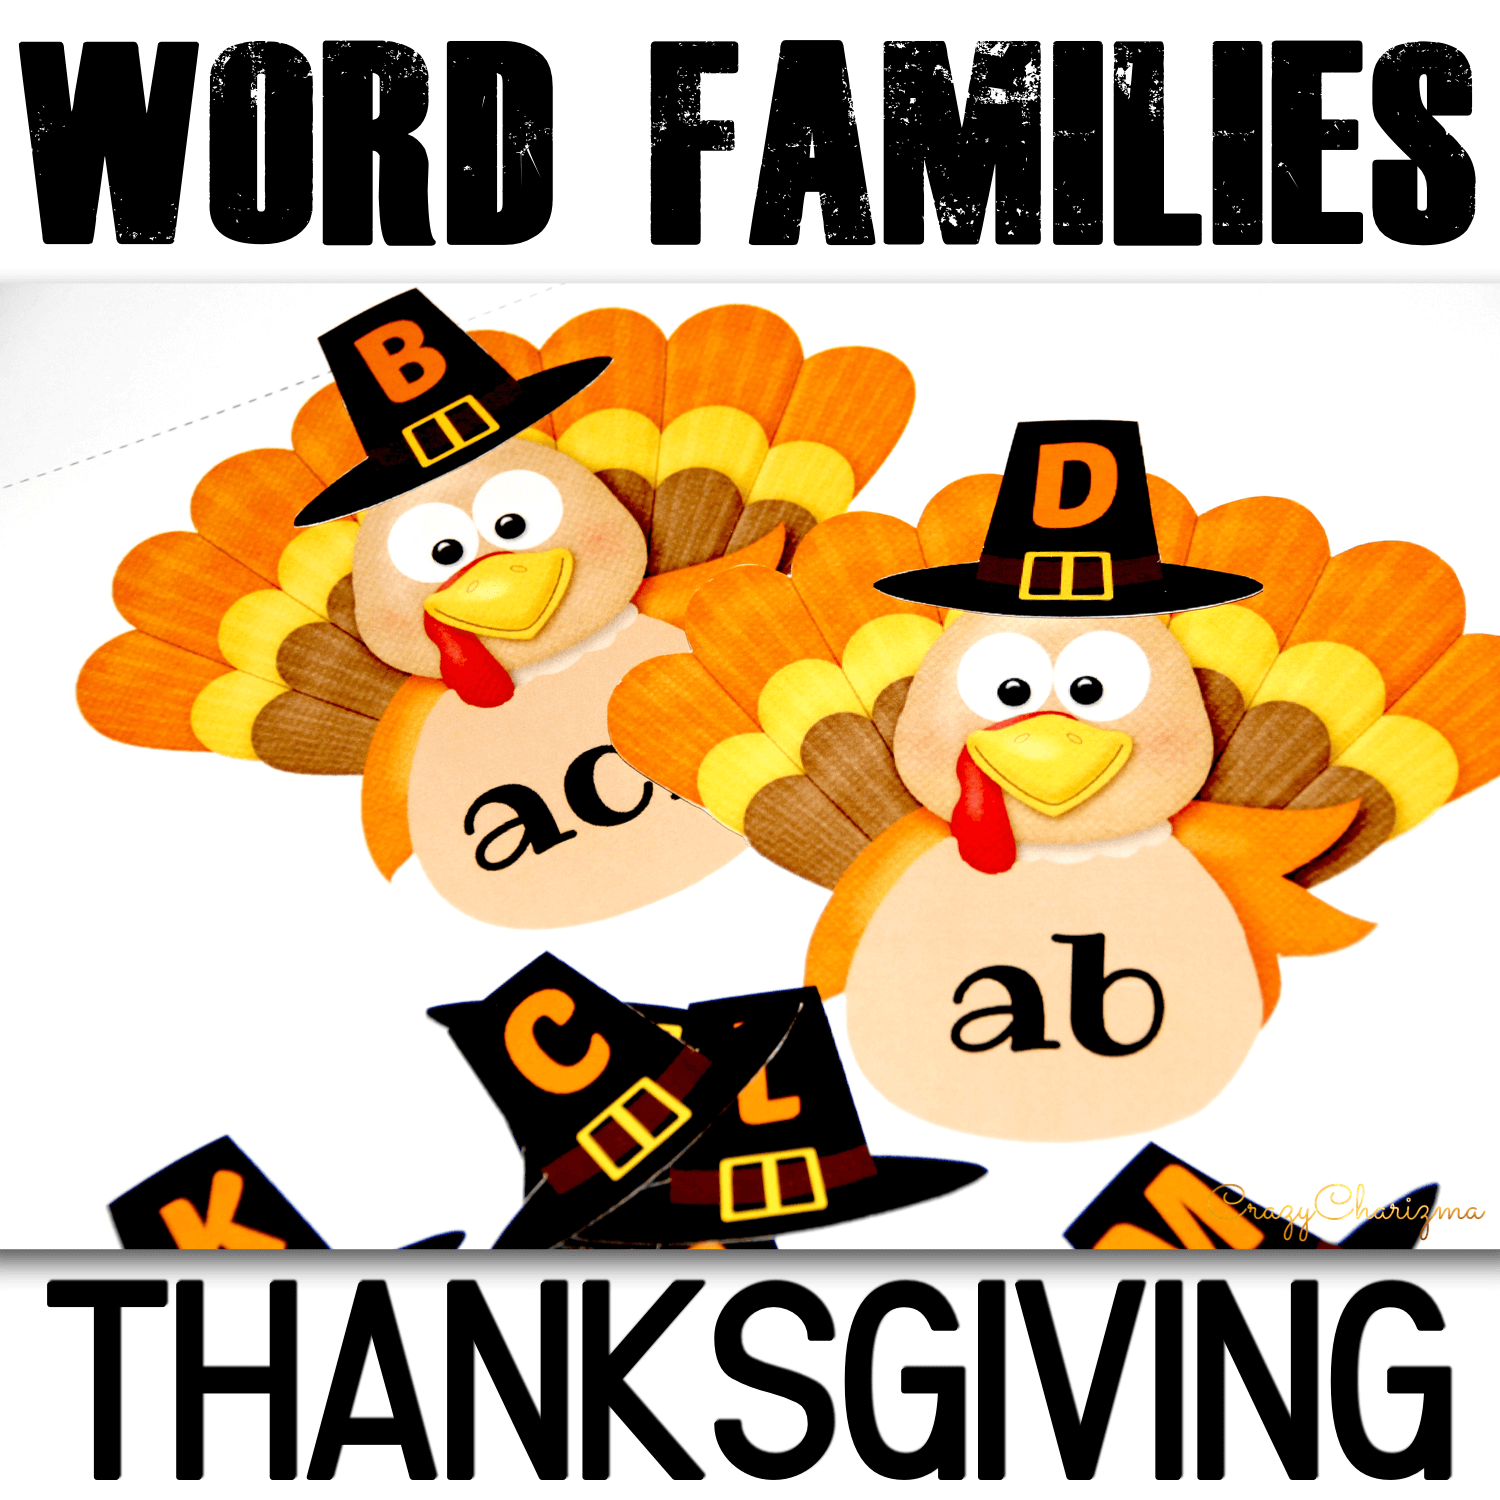 Practice phonics with these Thanksgiving activities - dress up the turkeys! These printables are perfect for kids in preschool, kindergarten, first and second grade.